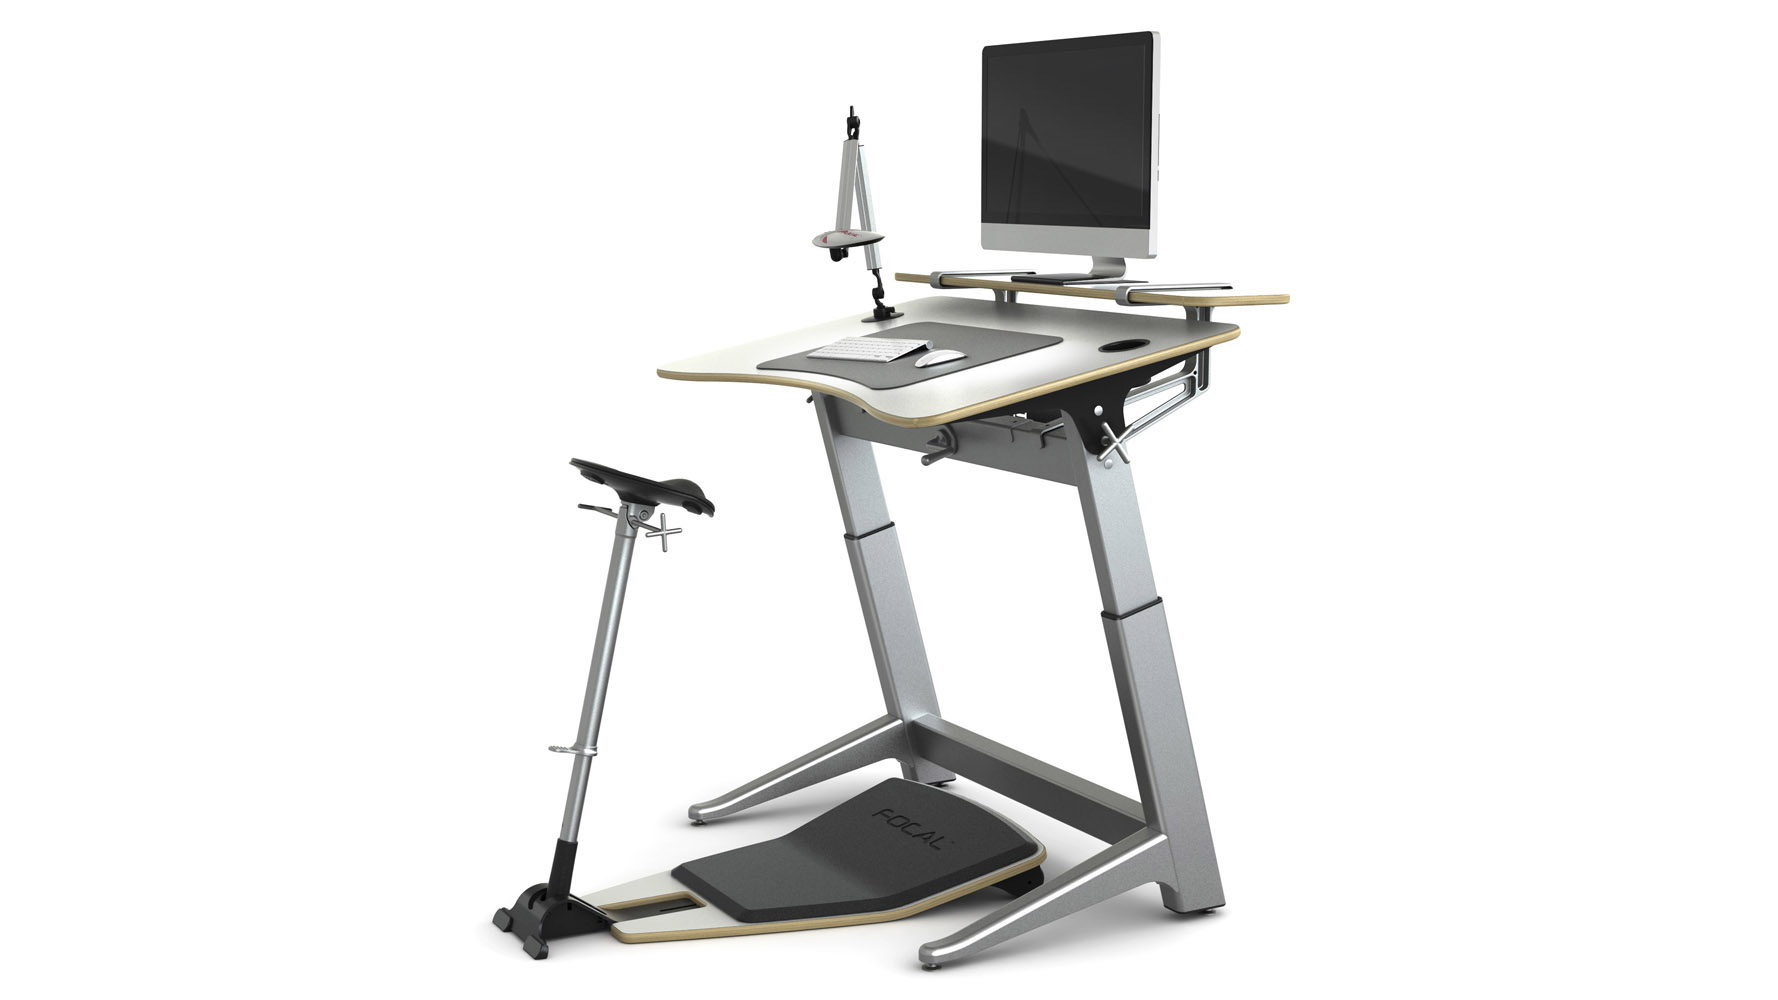 Focal upright locus desk 4 bundle pro desk seat for Locus seat and desk